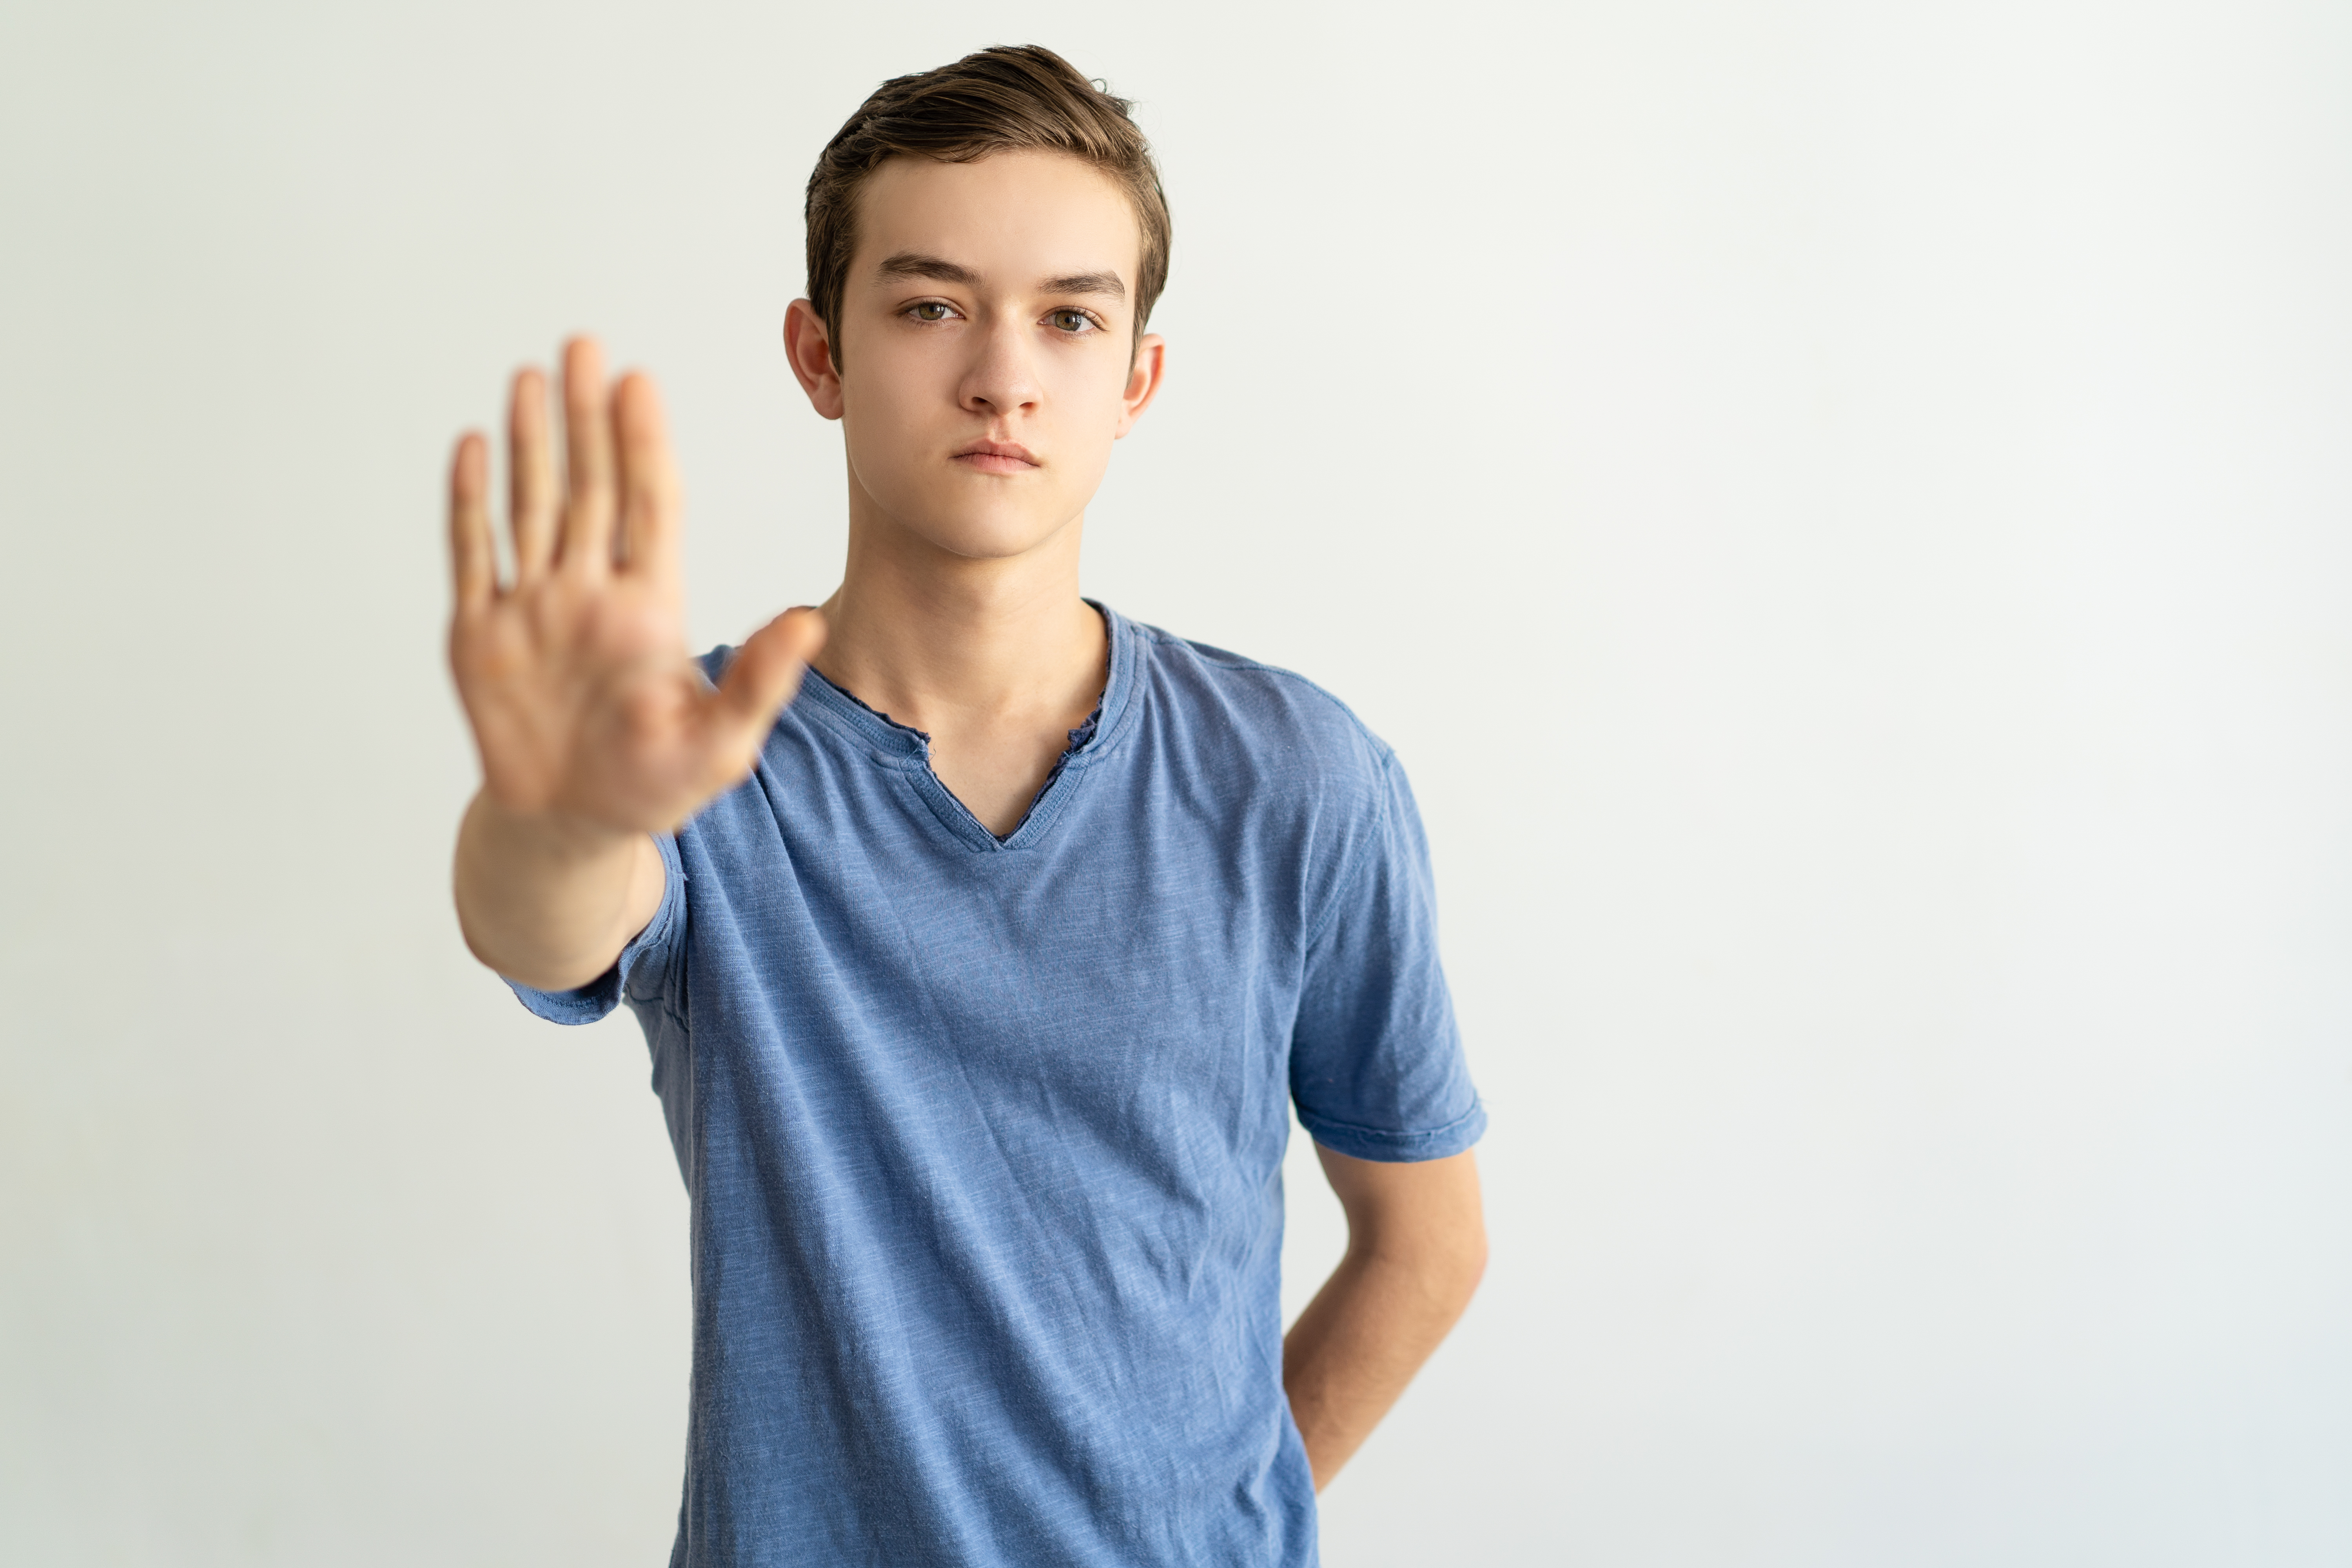 Serious strict young man making restriction gesture